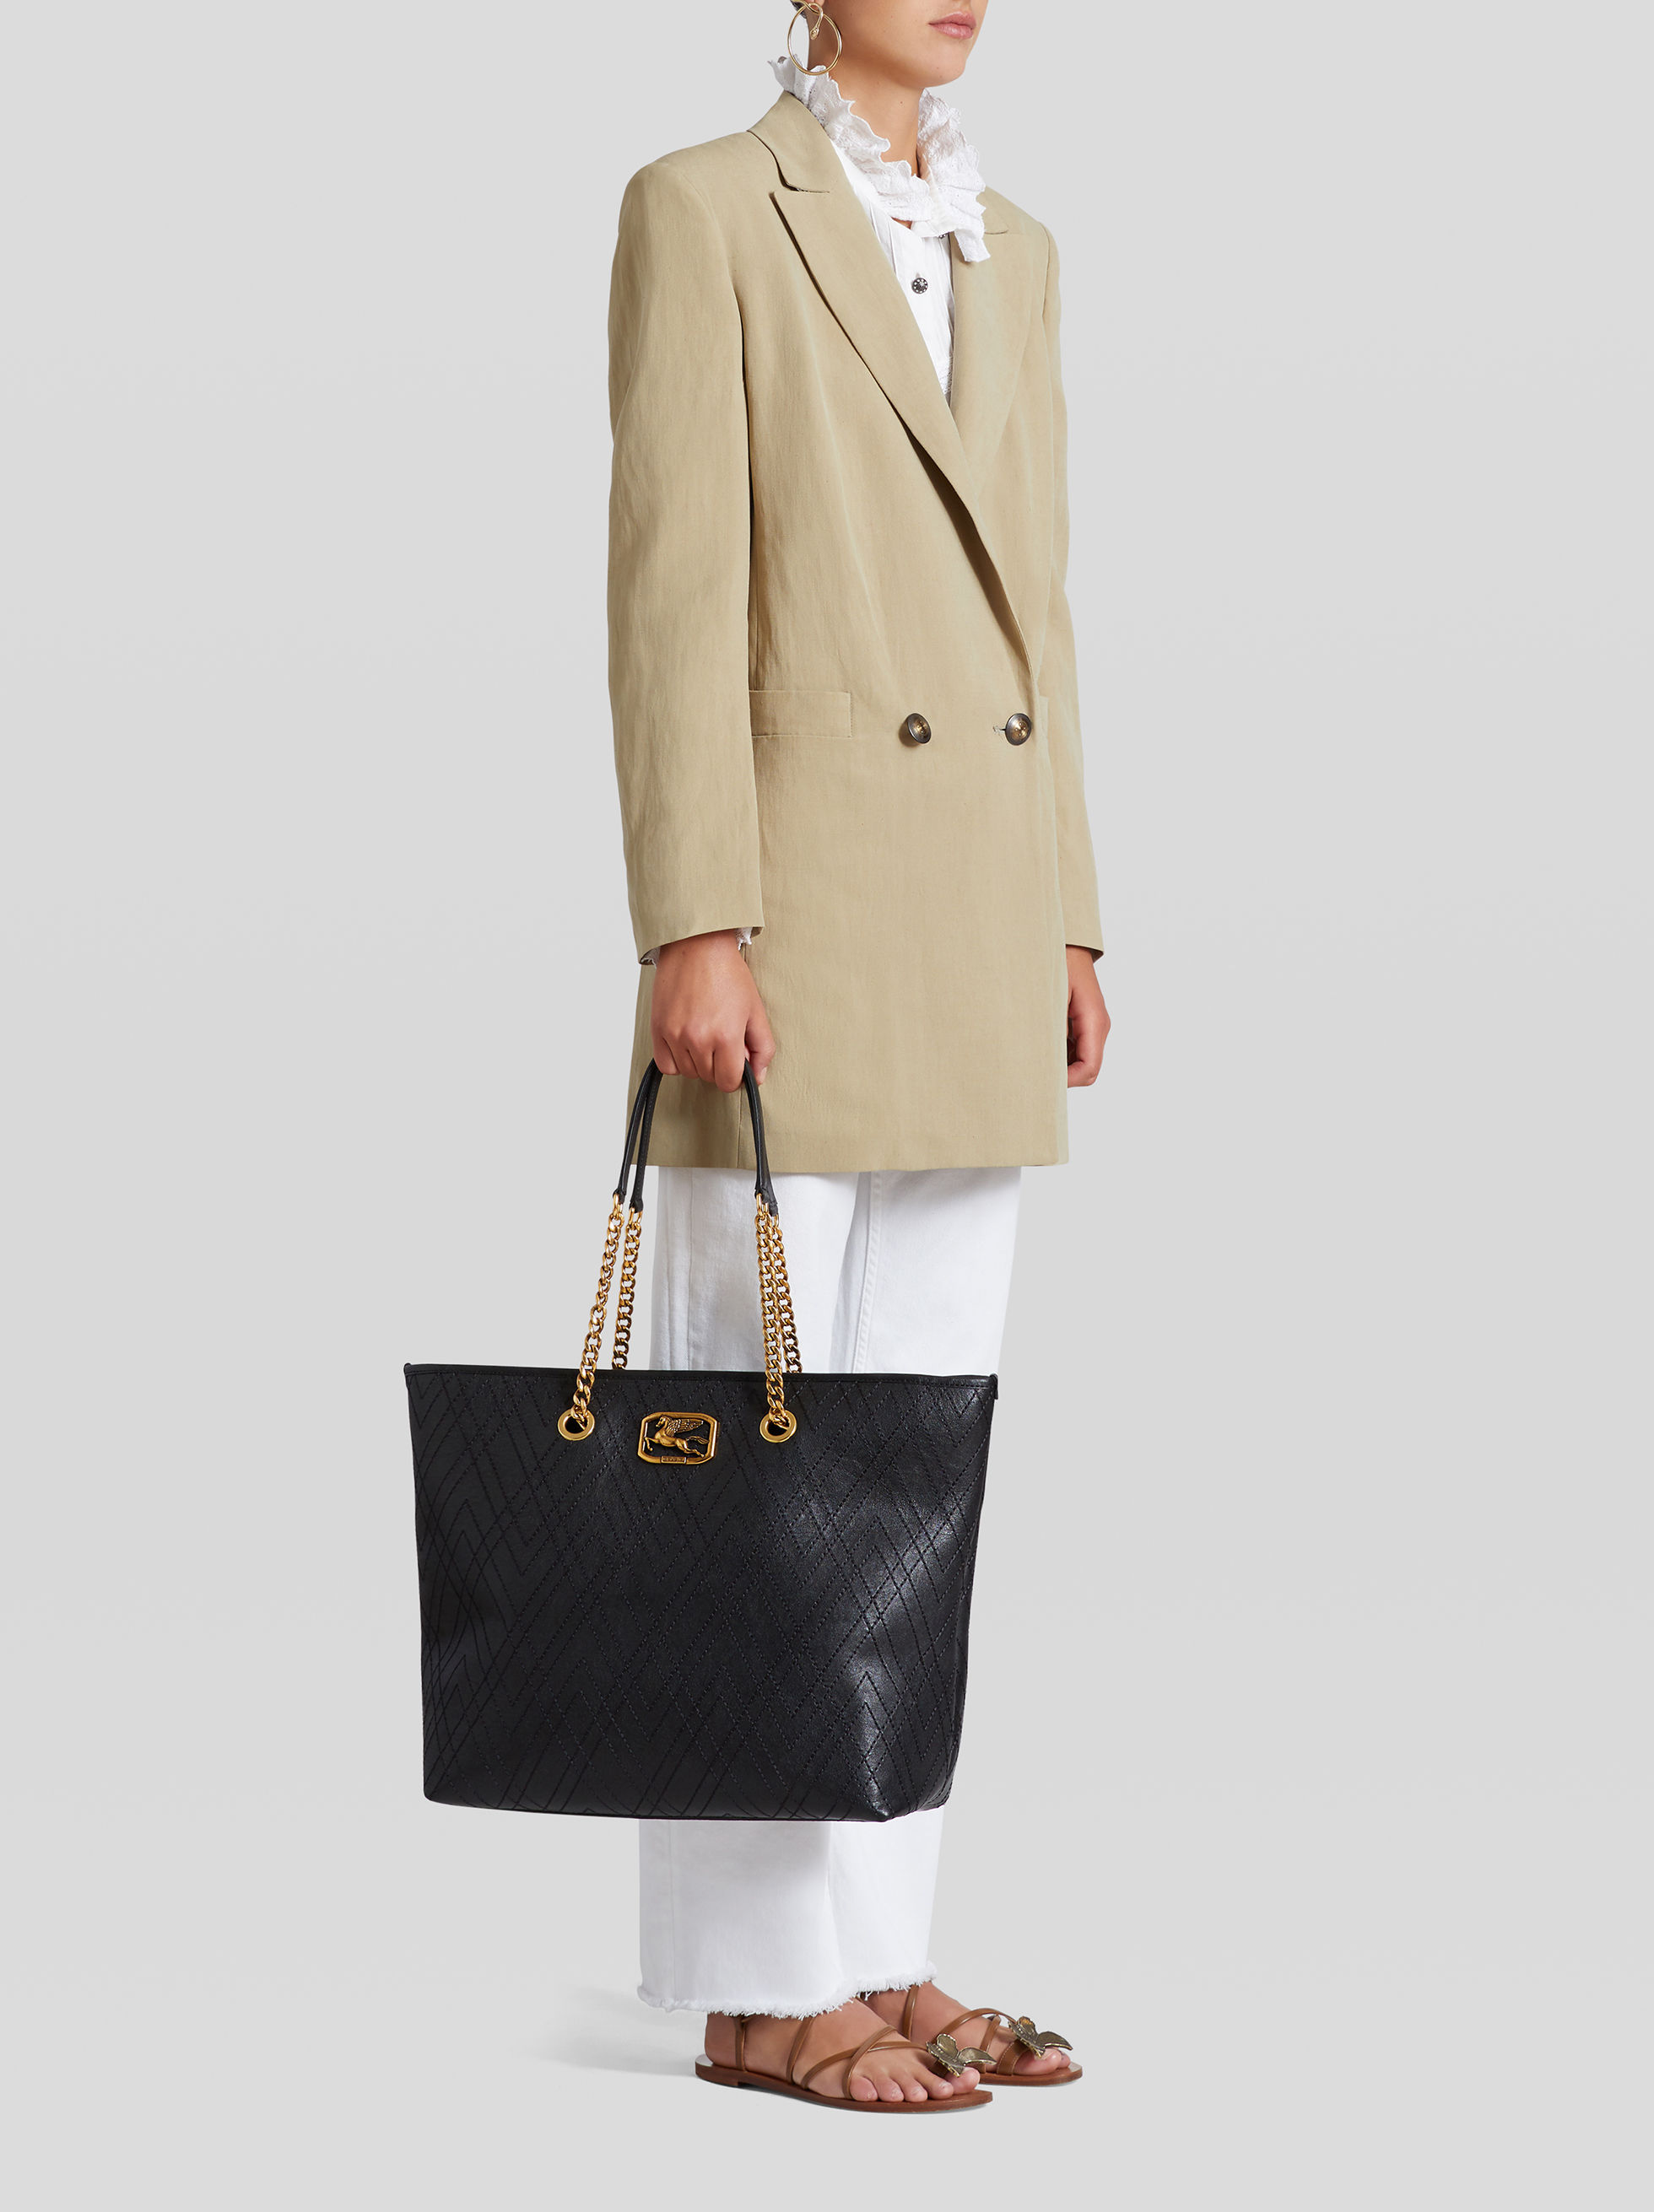 LEATHER PEGASO SHOPPING BAG